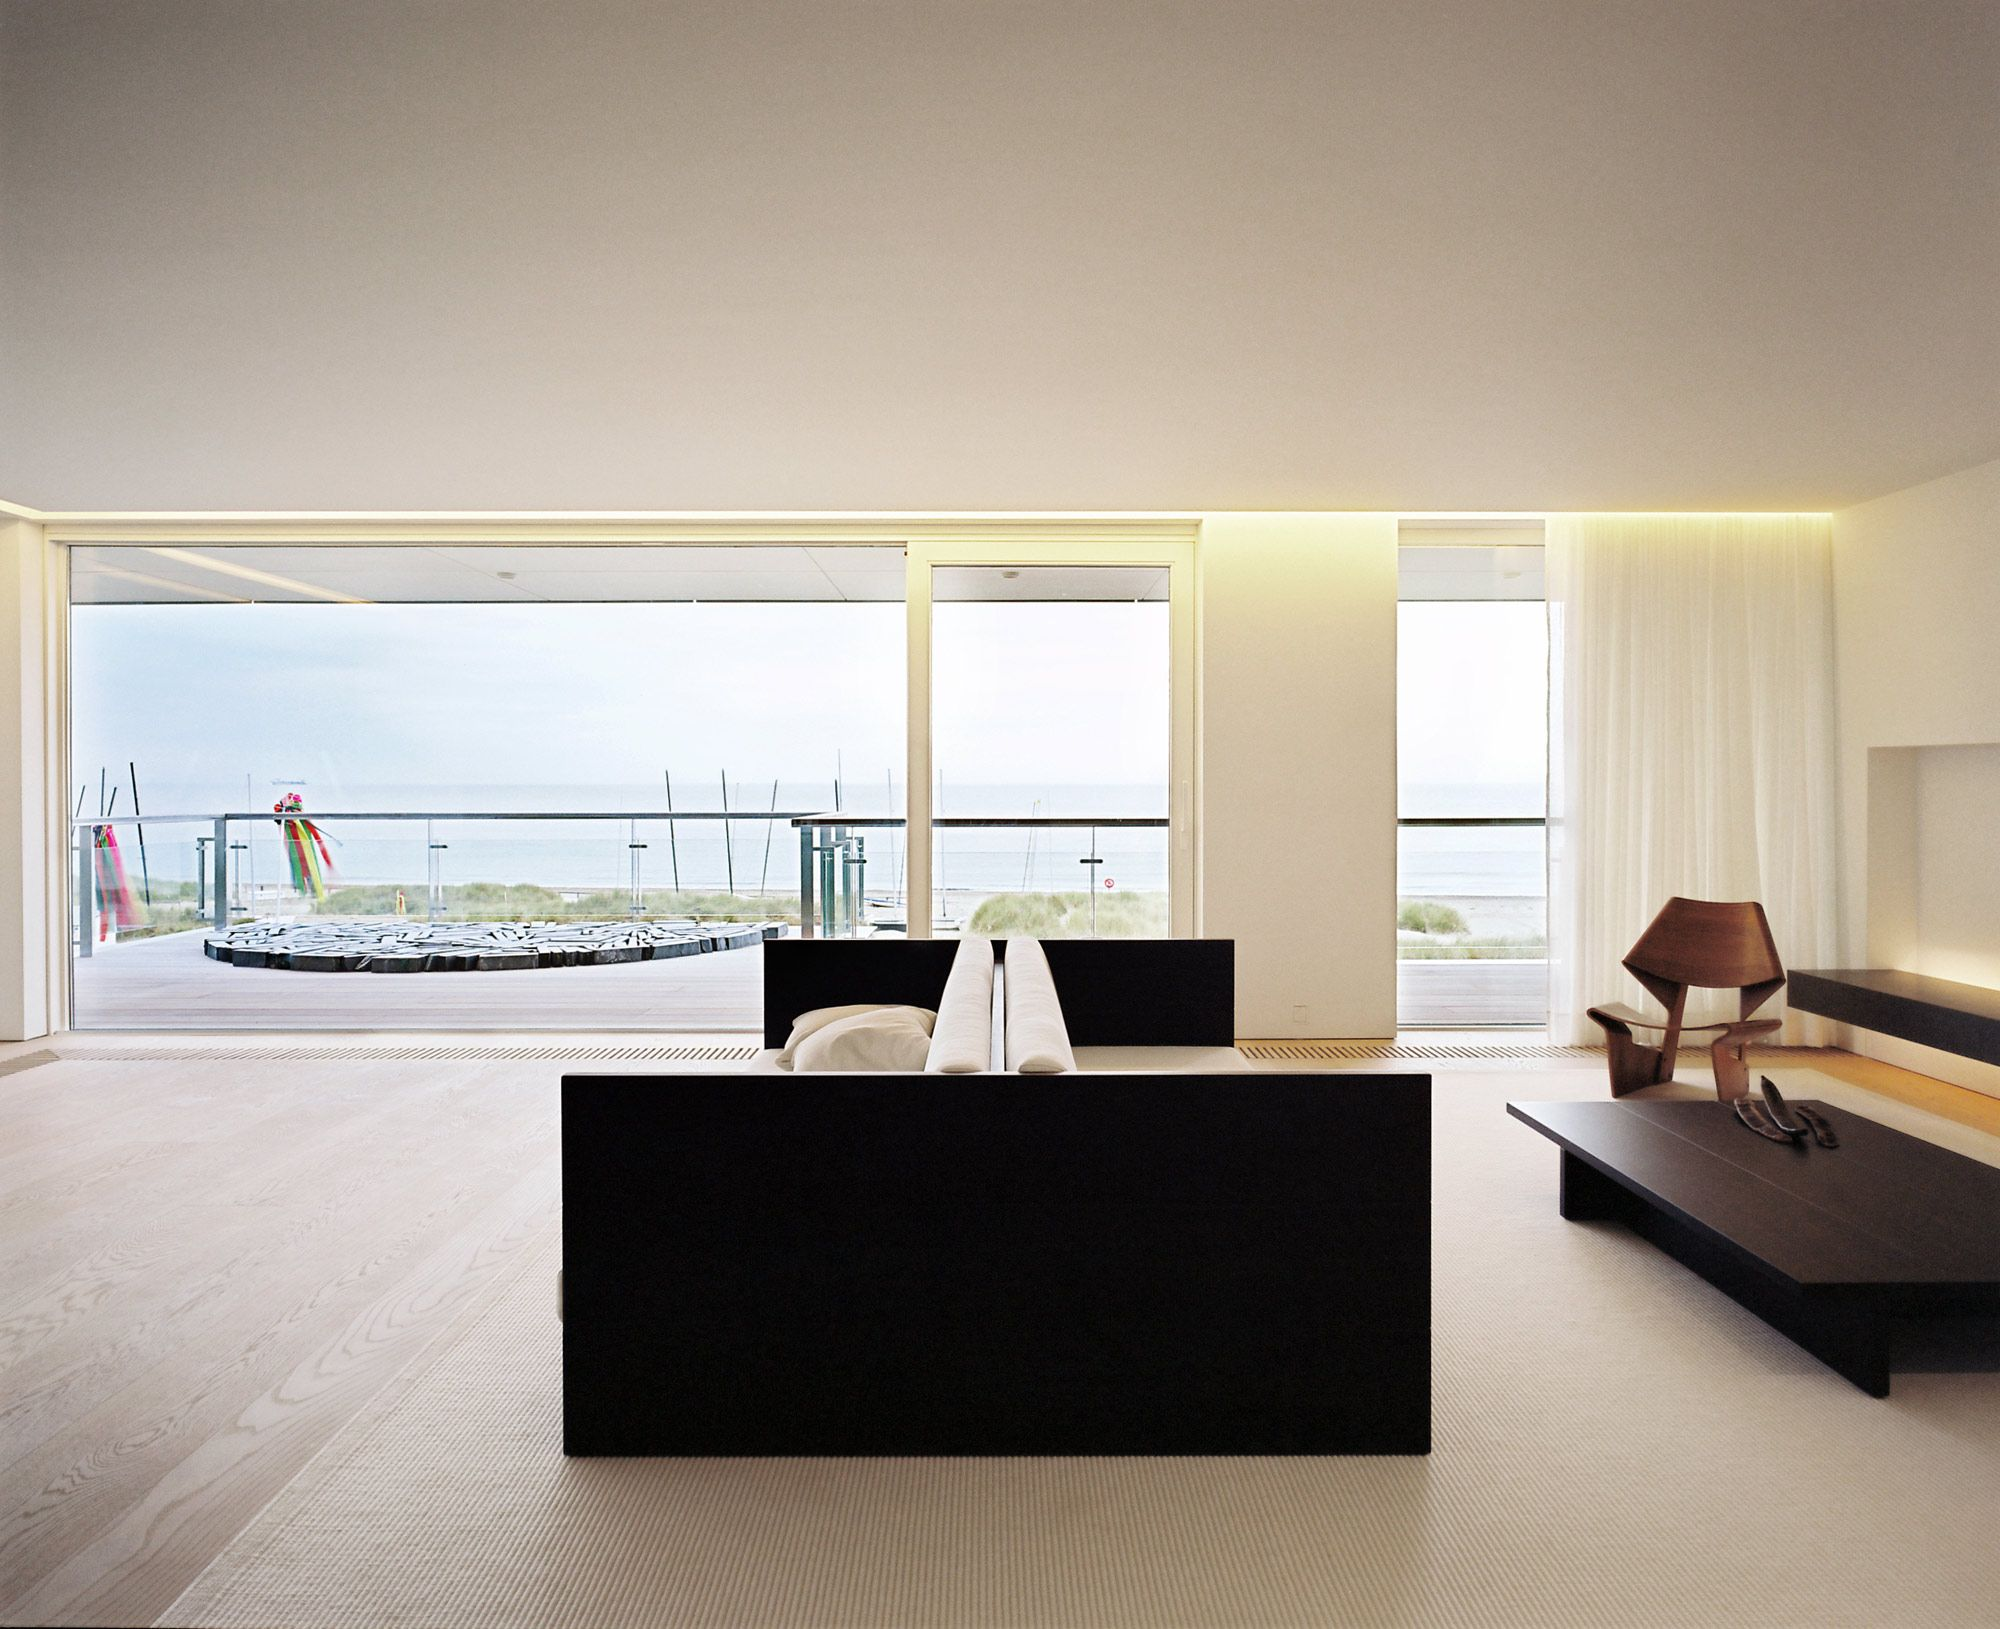 North Sea Apartment I Love The View And The Windows To